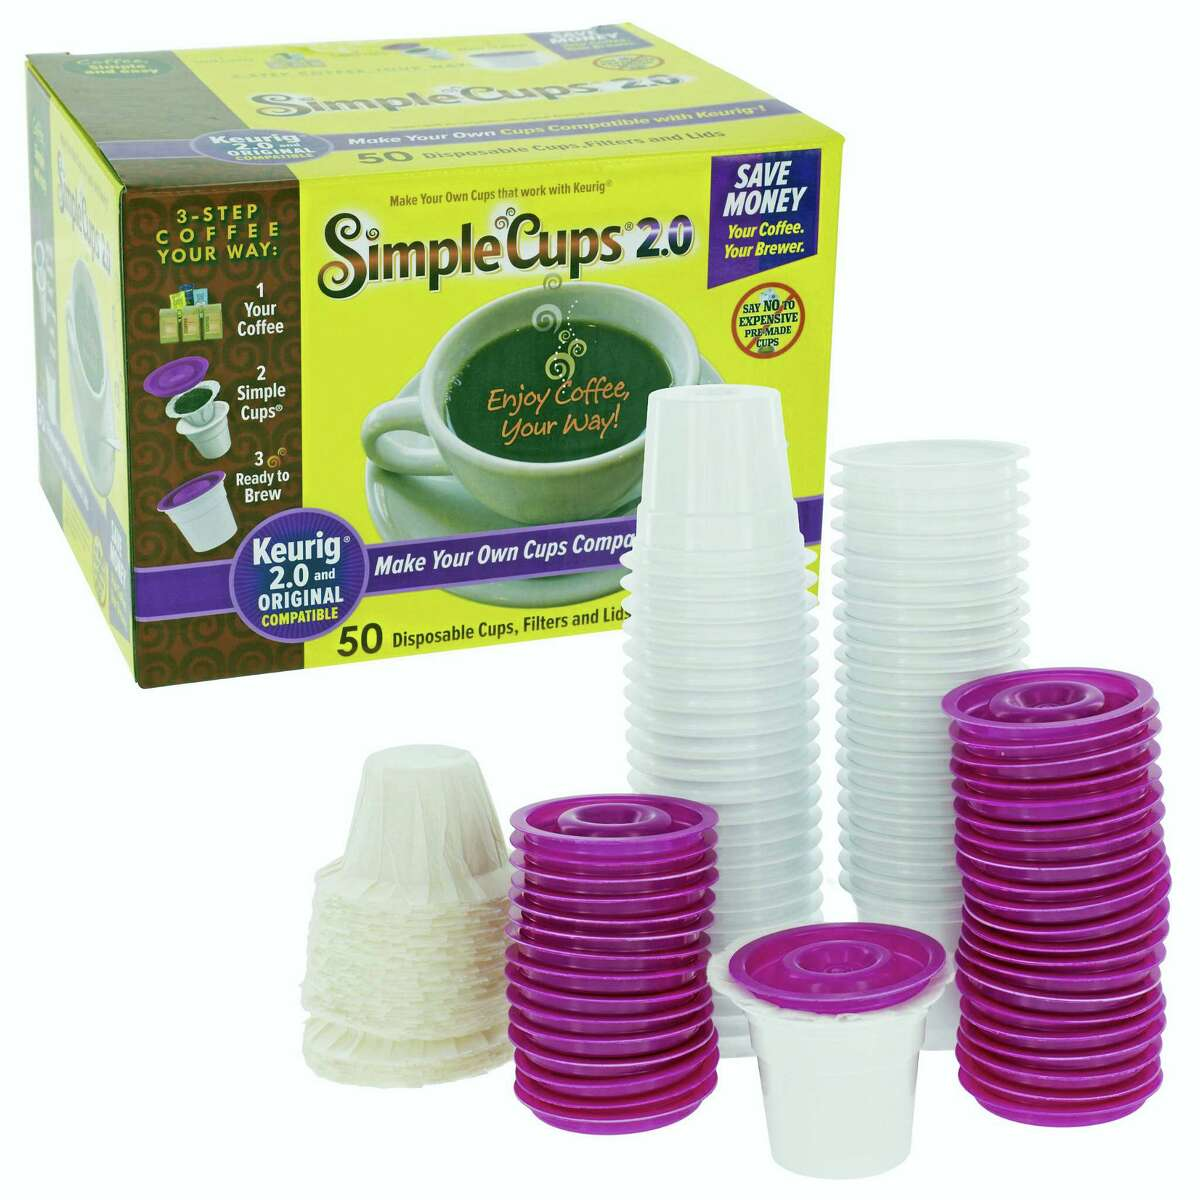 Simple Cups reusable and disposable K-Cups.